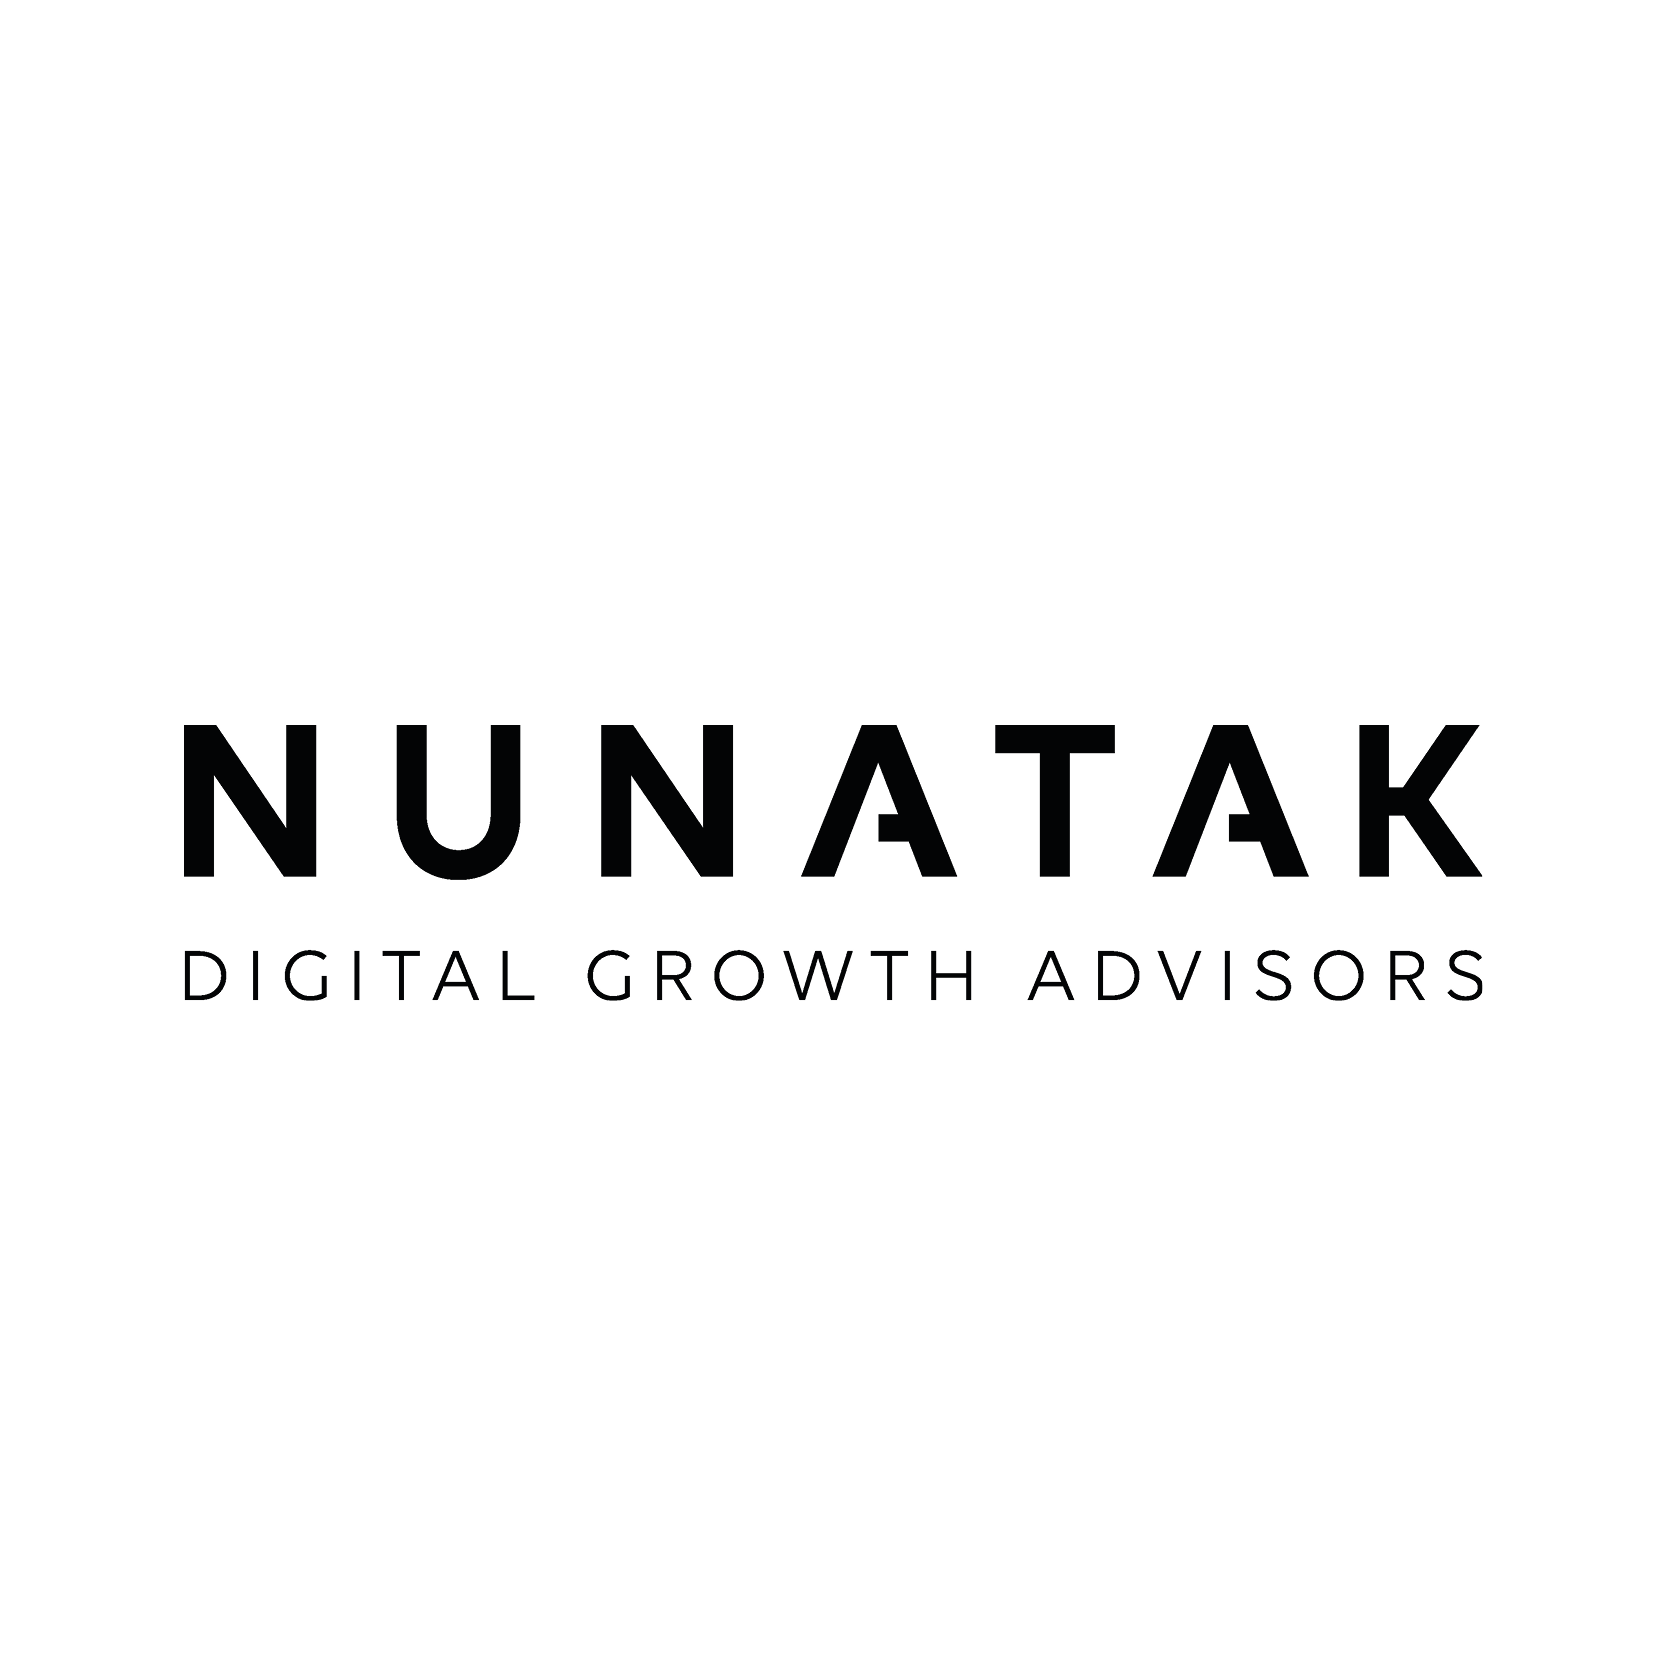 Kunden – The Nunatak Group